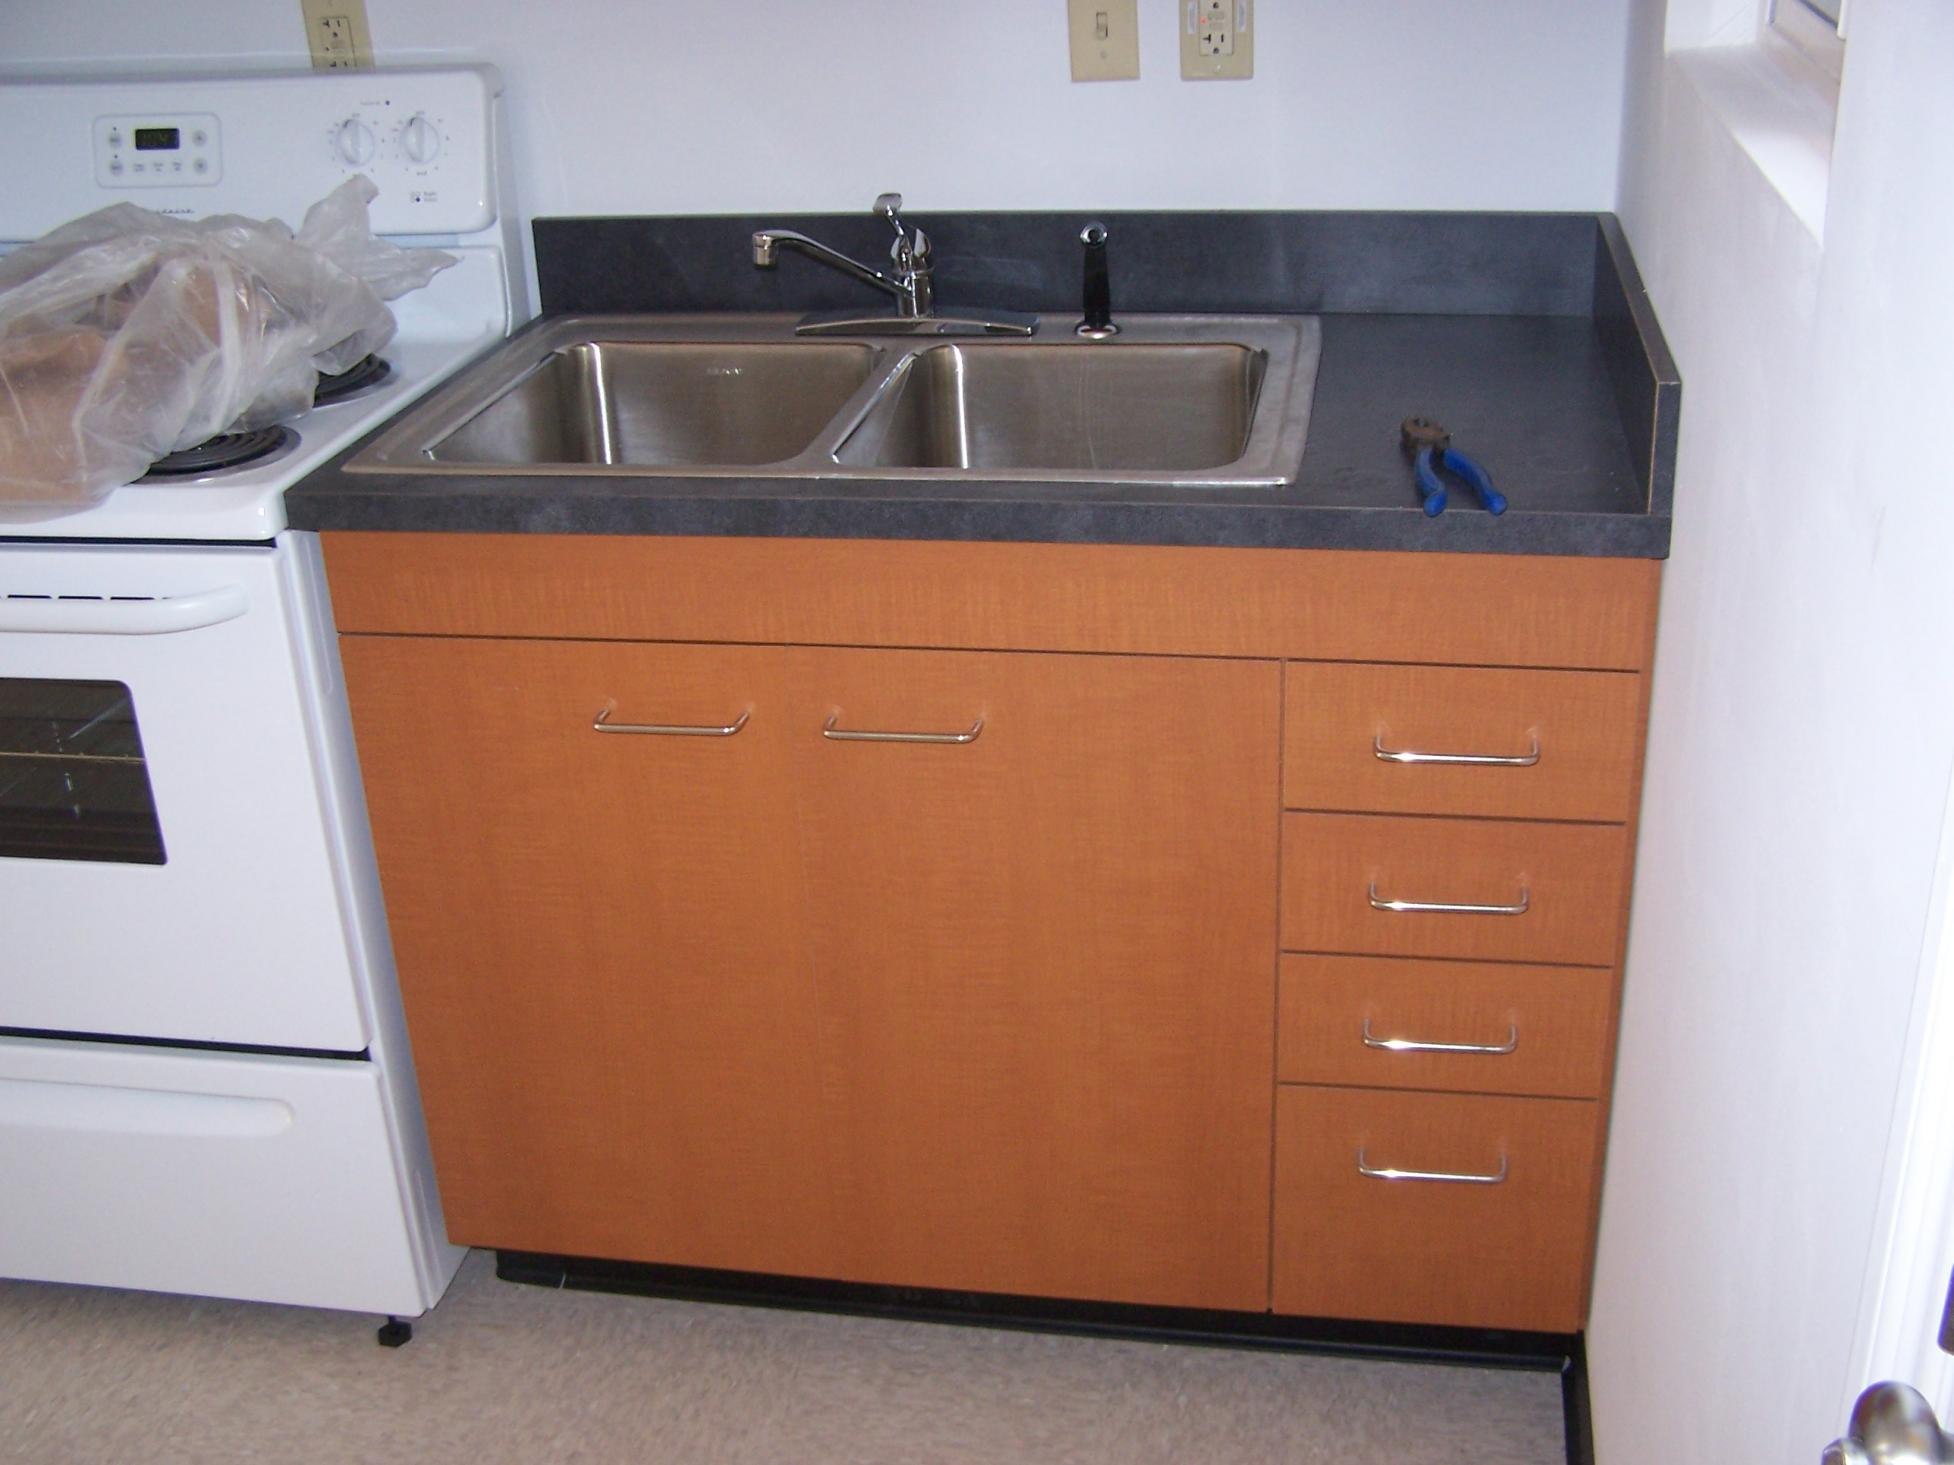 frameless kitchen cabinets aide dishwasher how to build cabinet doors onvacations wallpaper